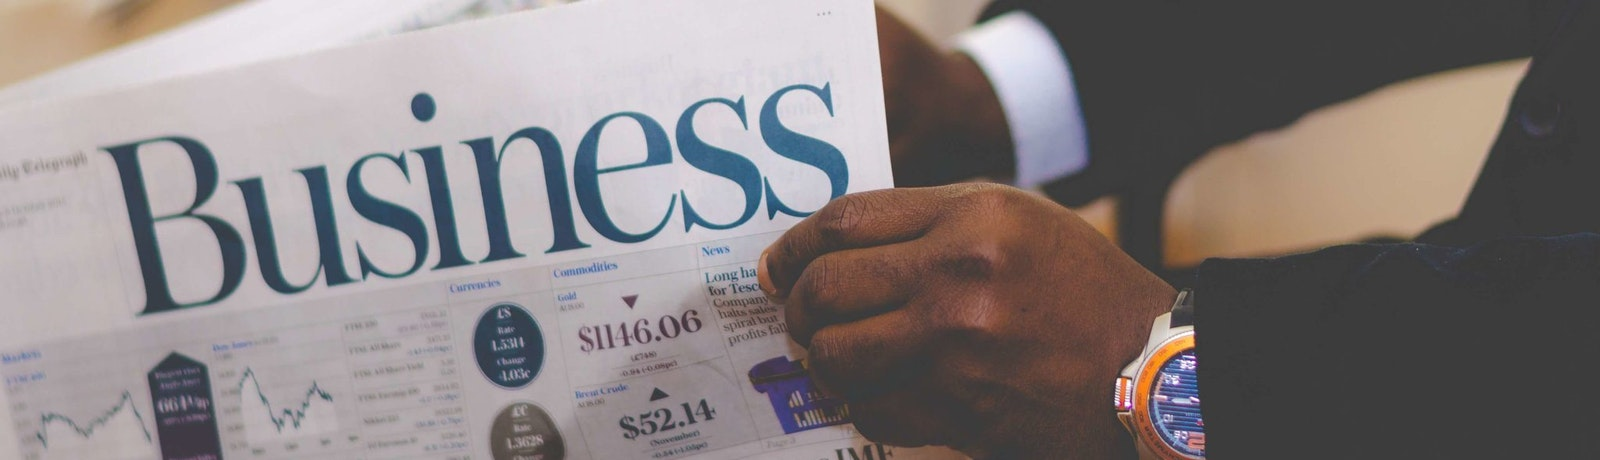 a pair hands holding the business section of the newspaper